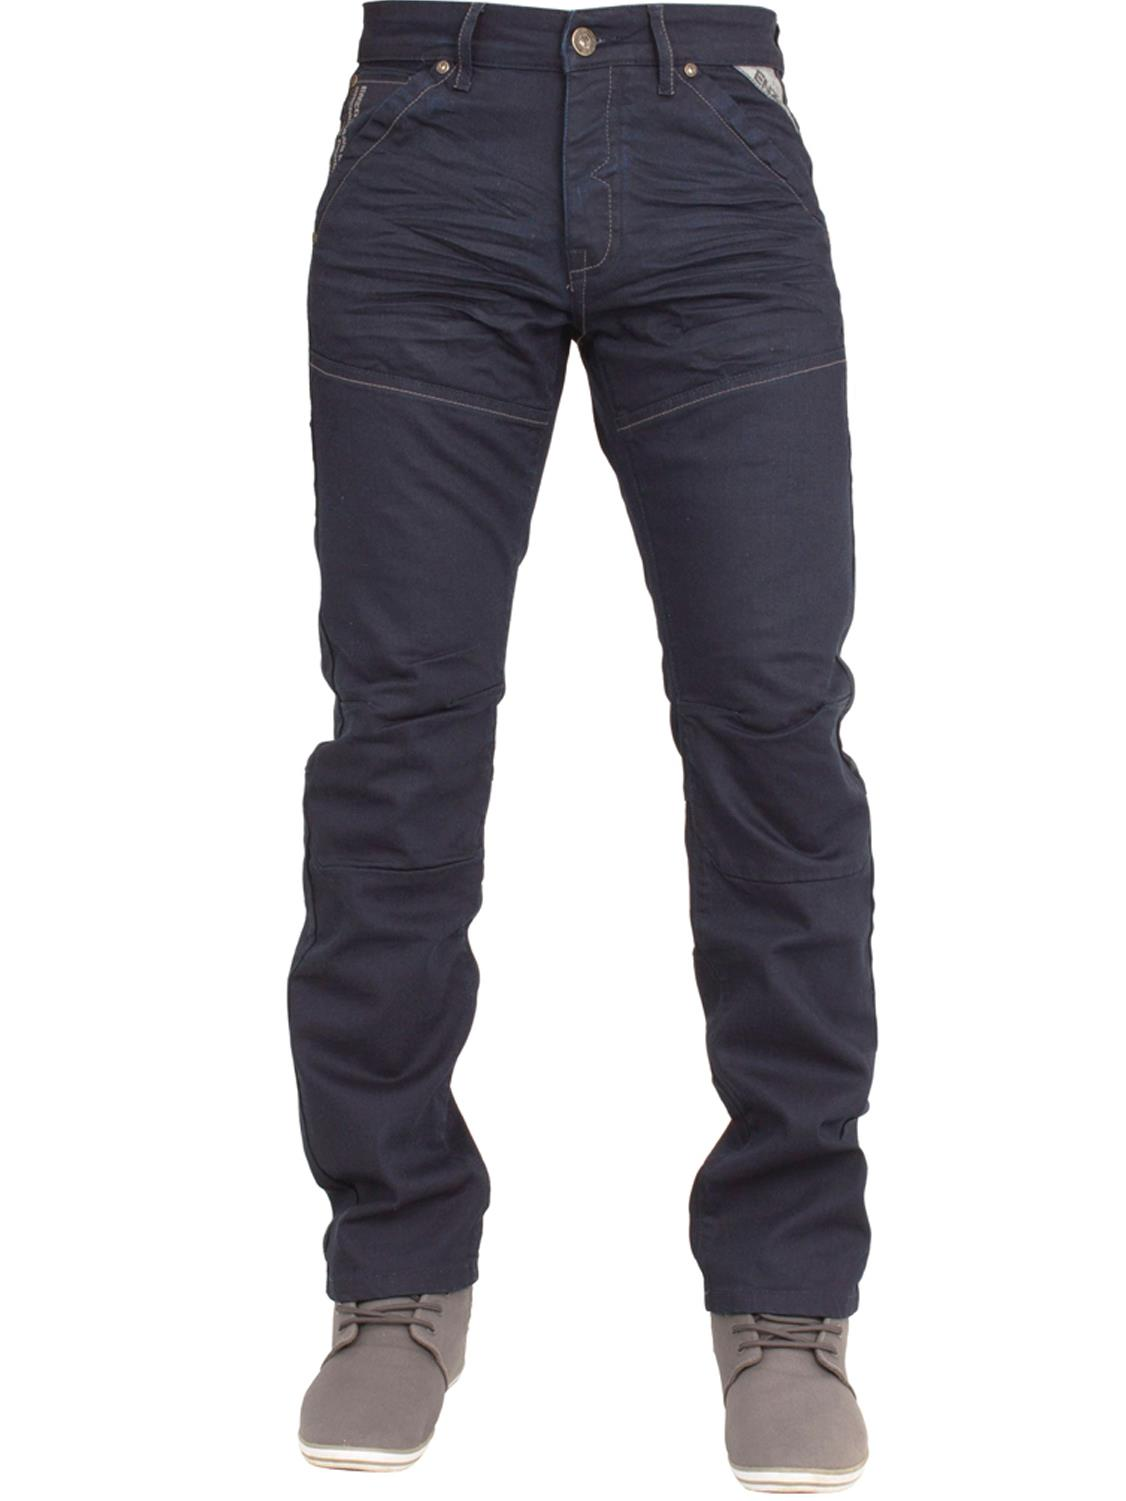 Enzo-Mens-Jeans-Big-Tall-Leg-King-Size-Denim-Pants-Chino-Trousers-Waist-44-034-60-034 miniature 23